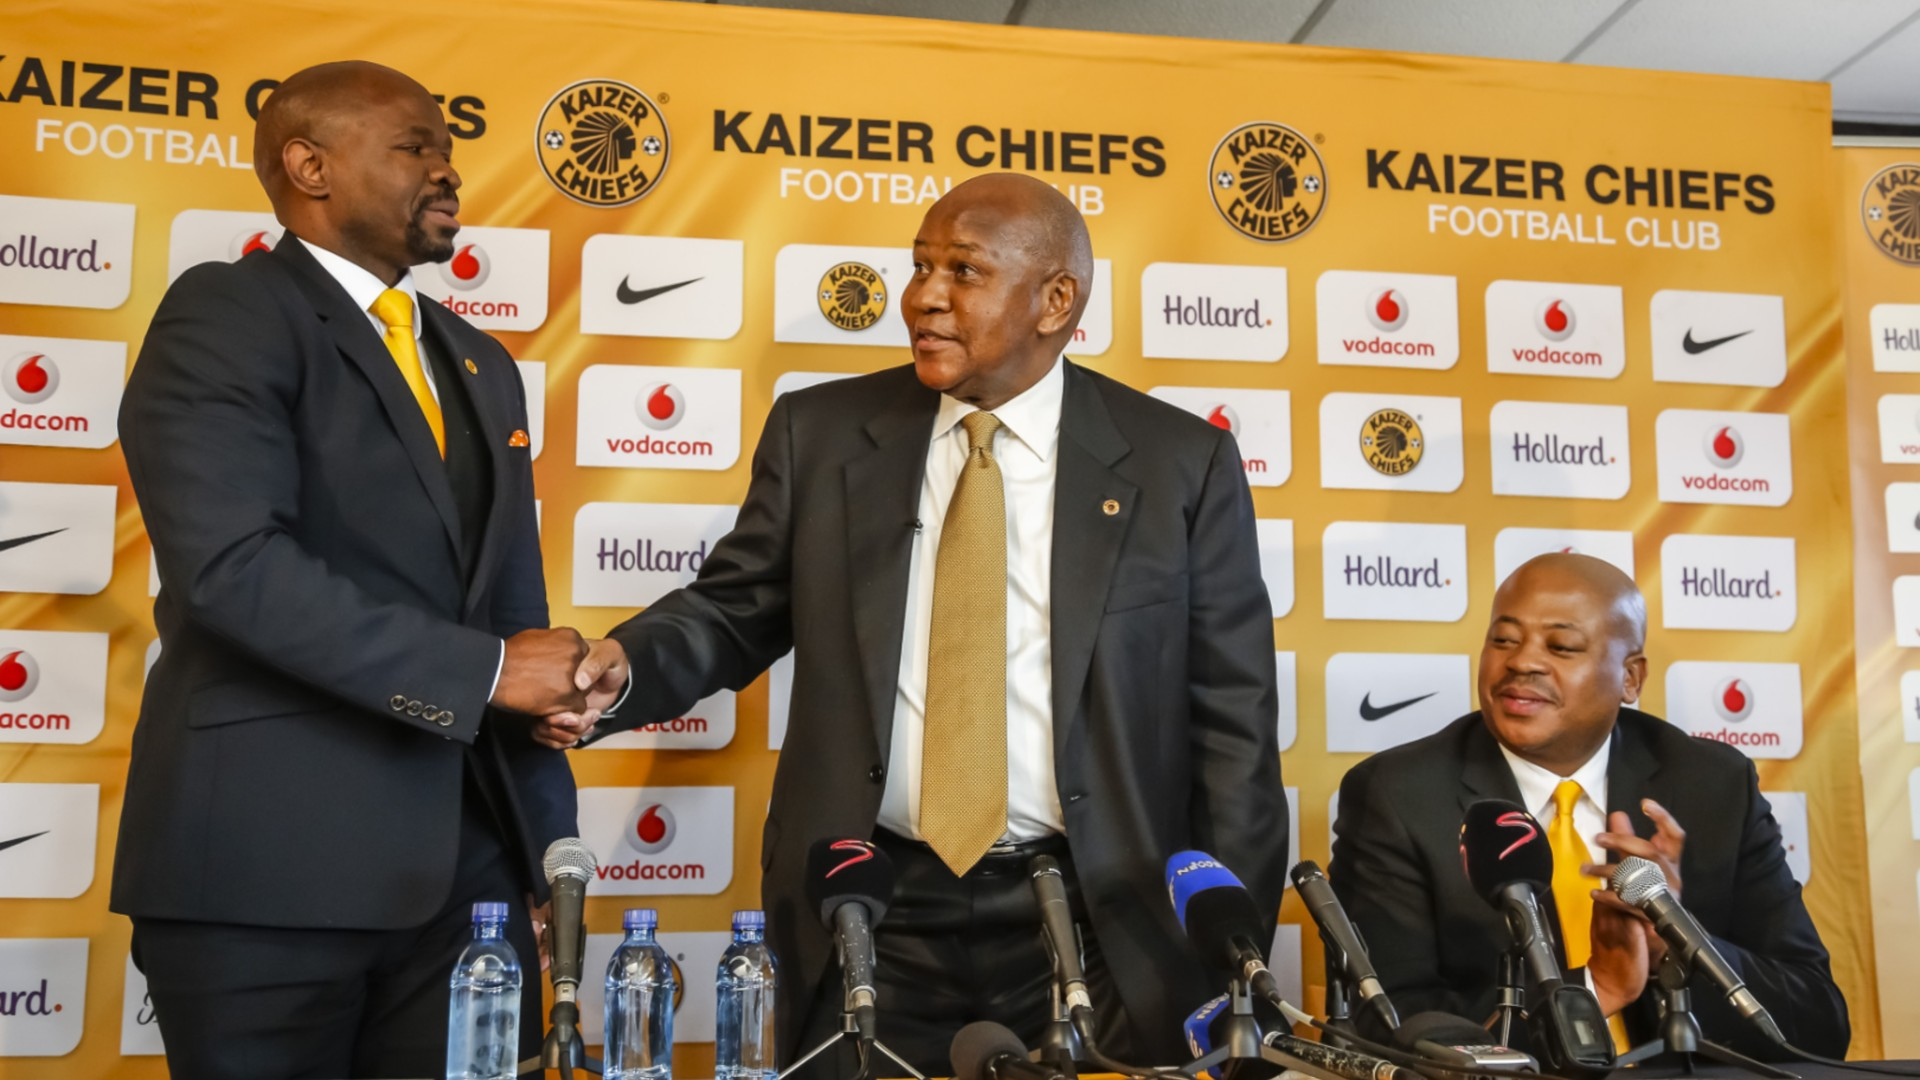 Kaizer Chiefs is one of the few teams which plays good football in PSL